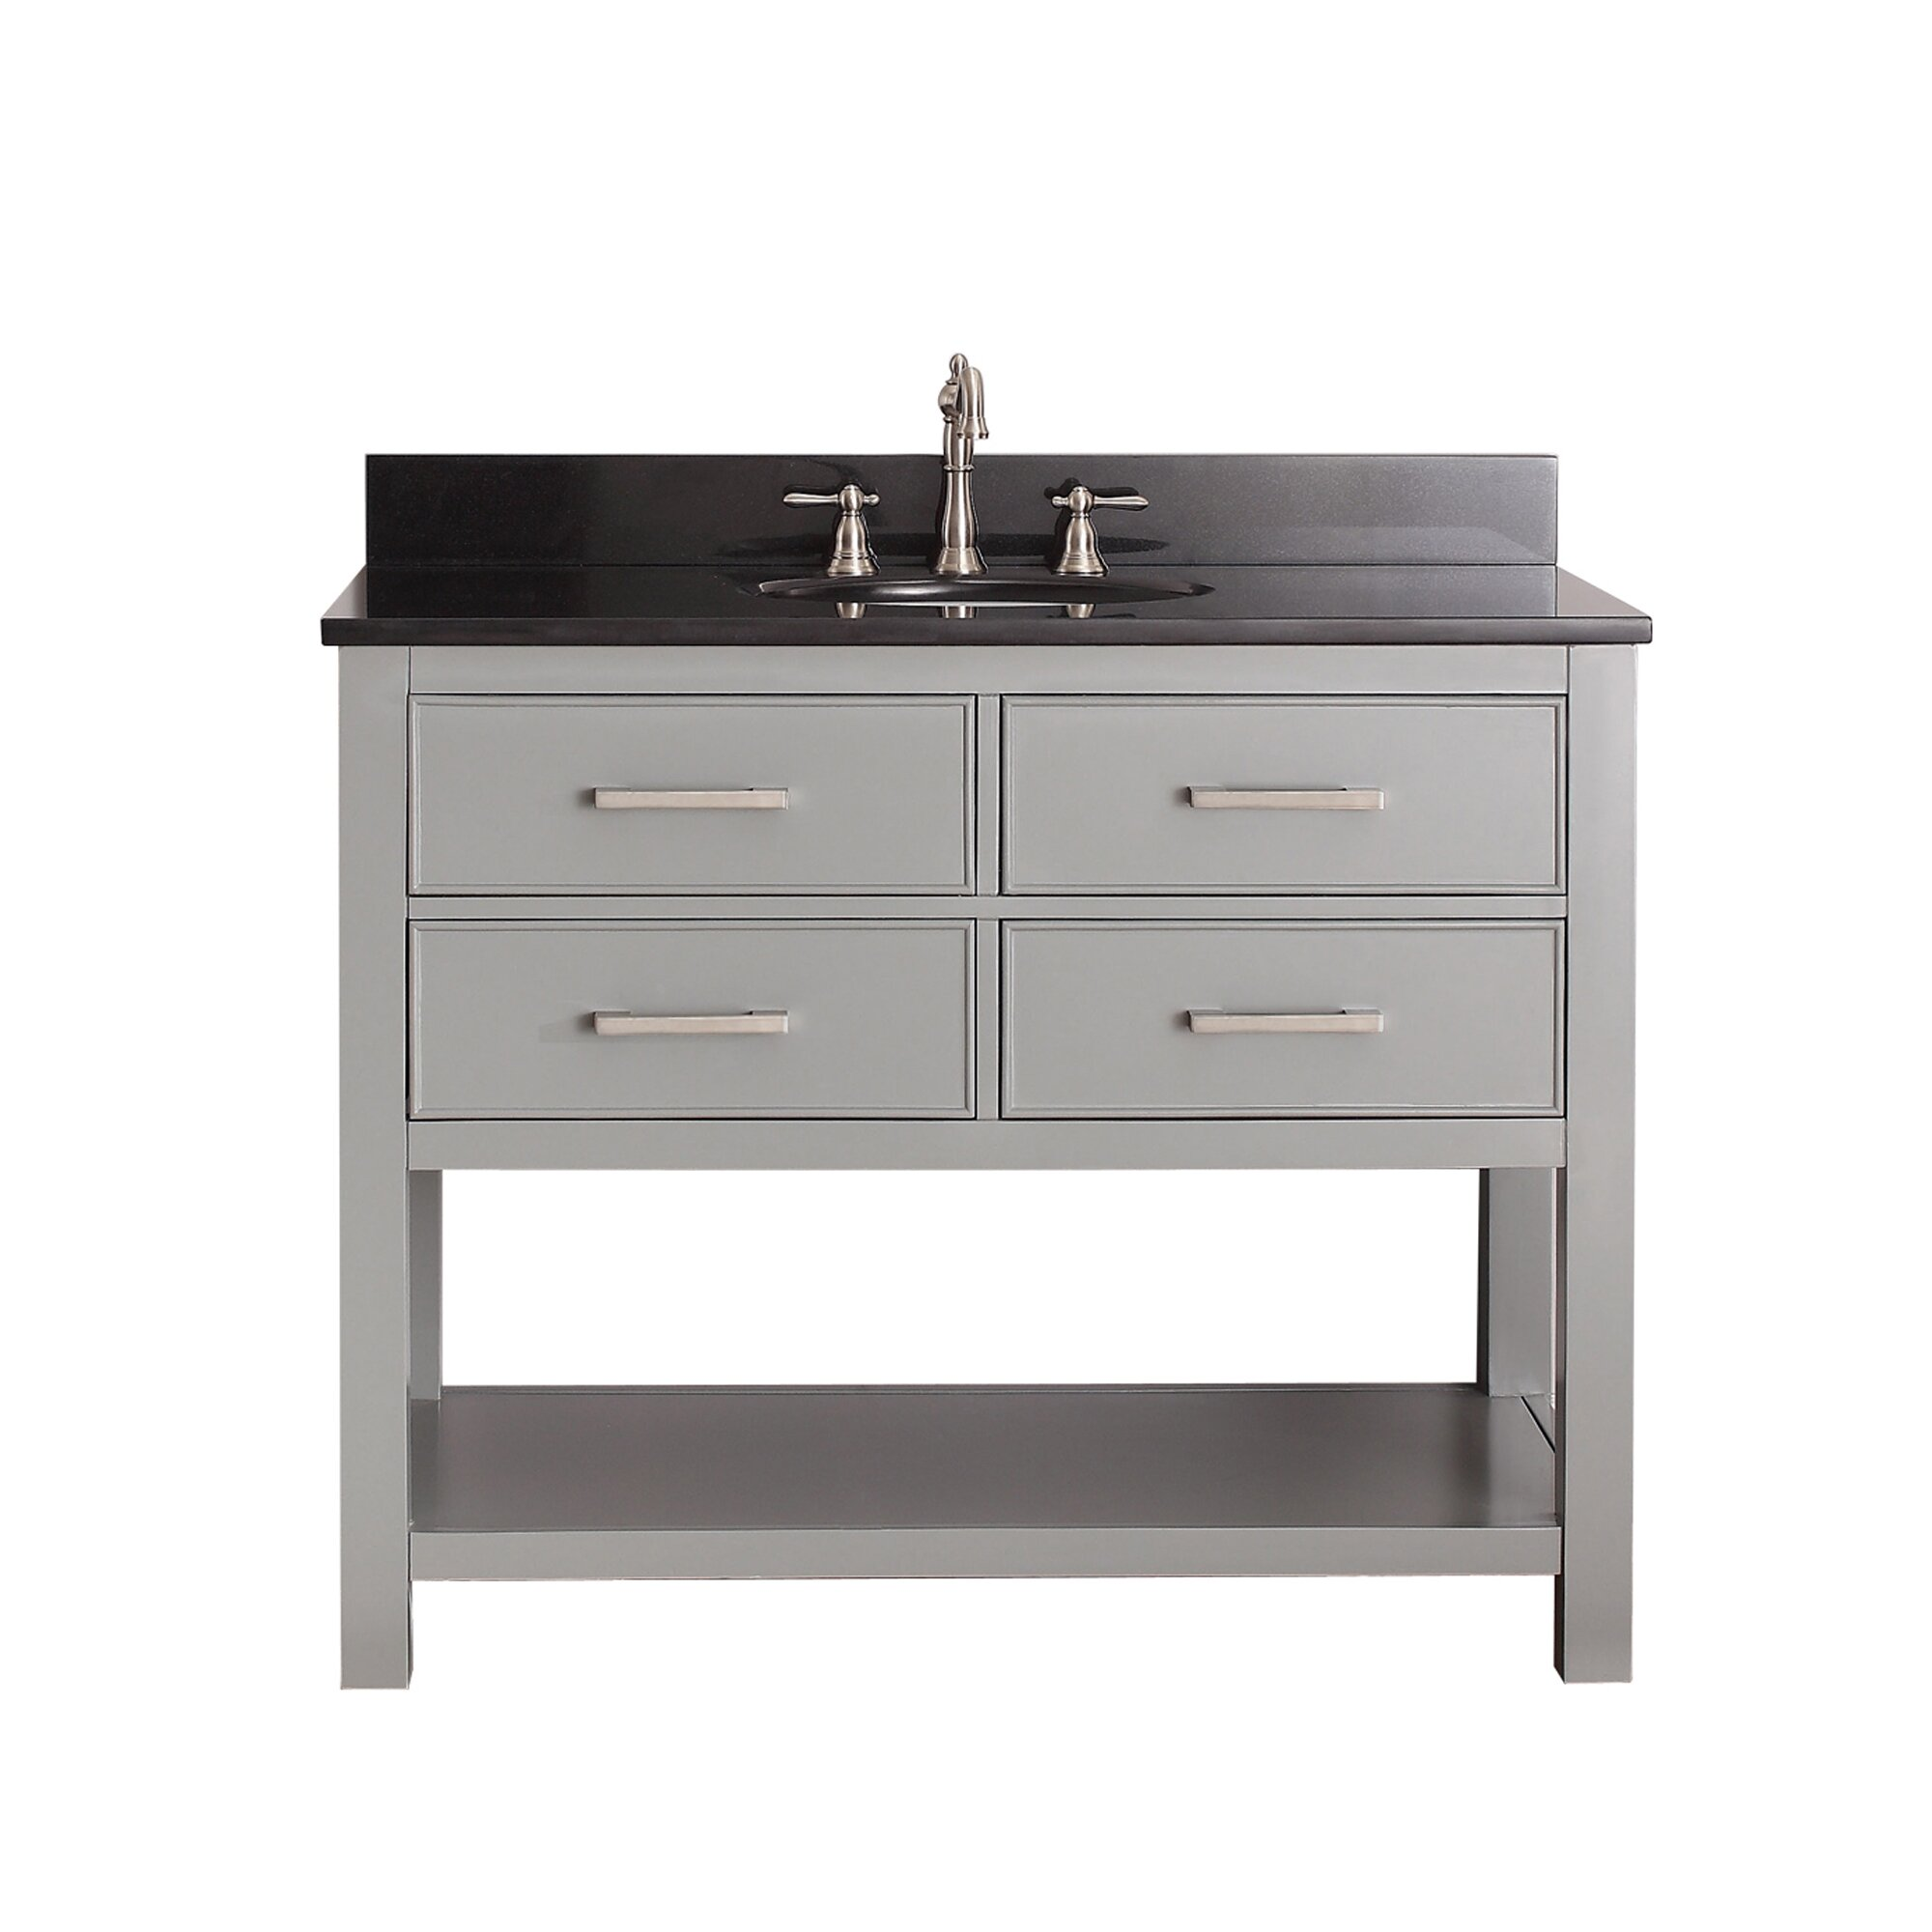 43 Bathroom Vanity #15: Avanity Brooks 43u0026amp;quot; Single Bathroom Vanity Set